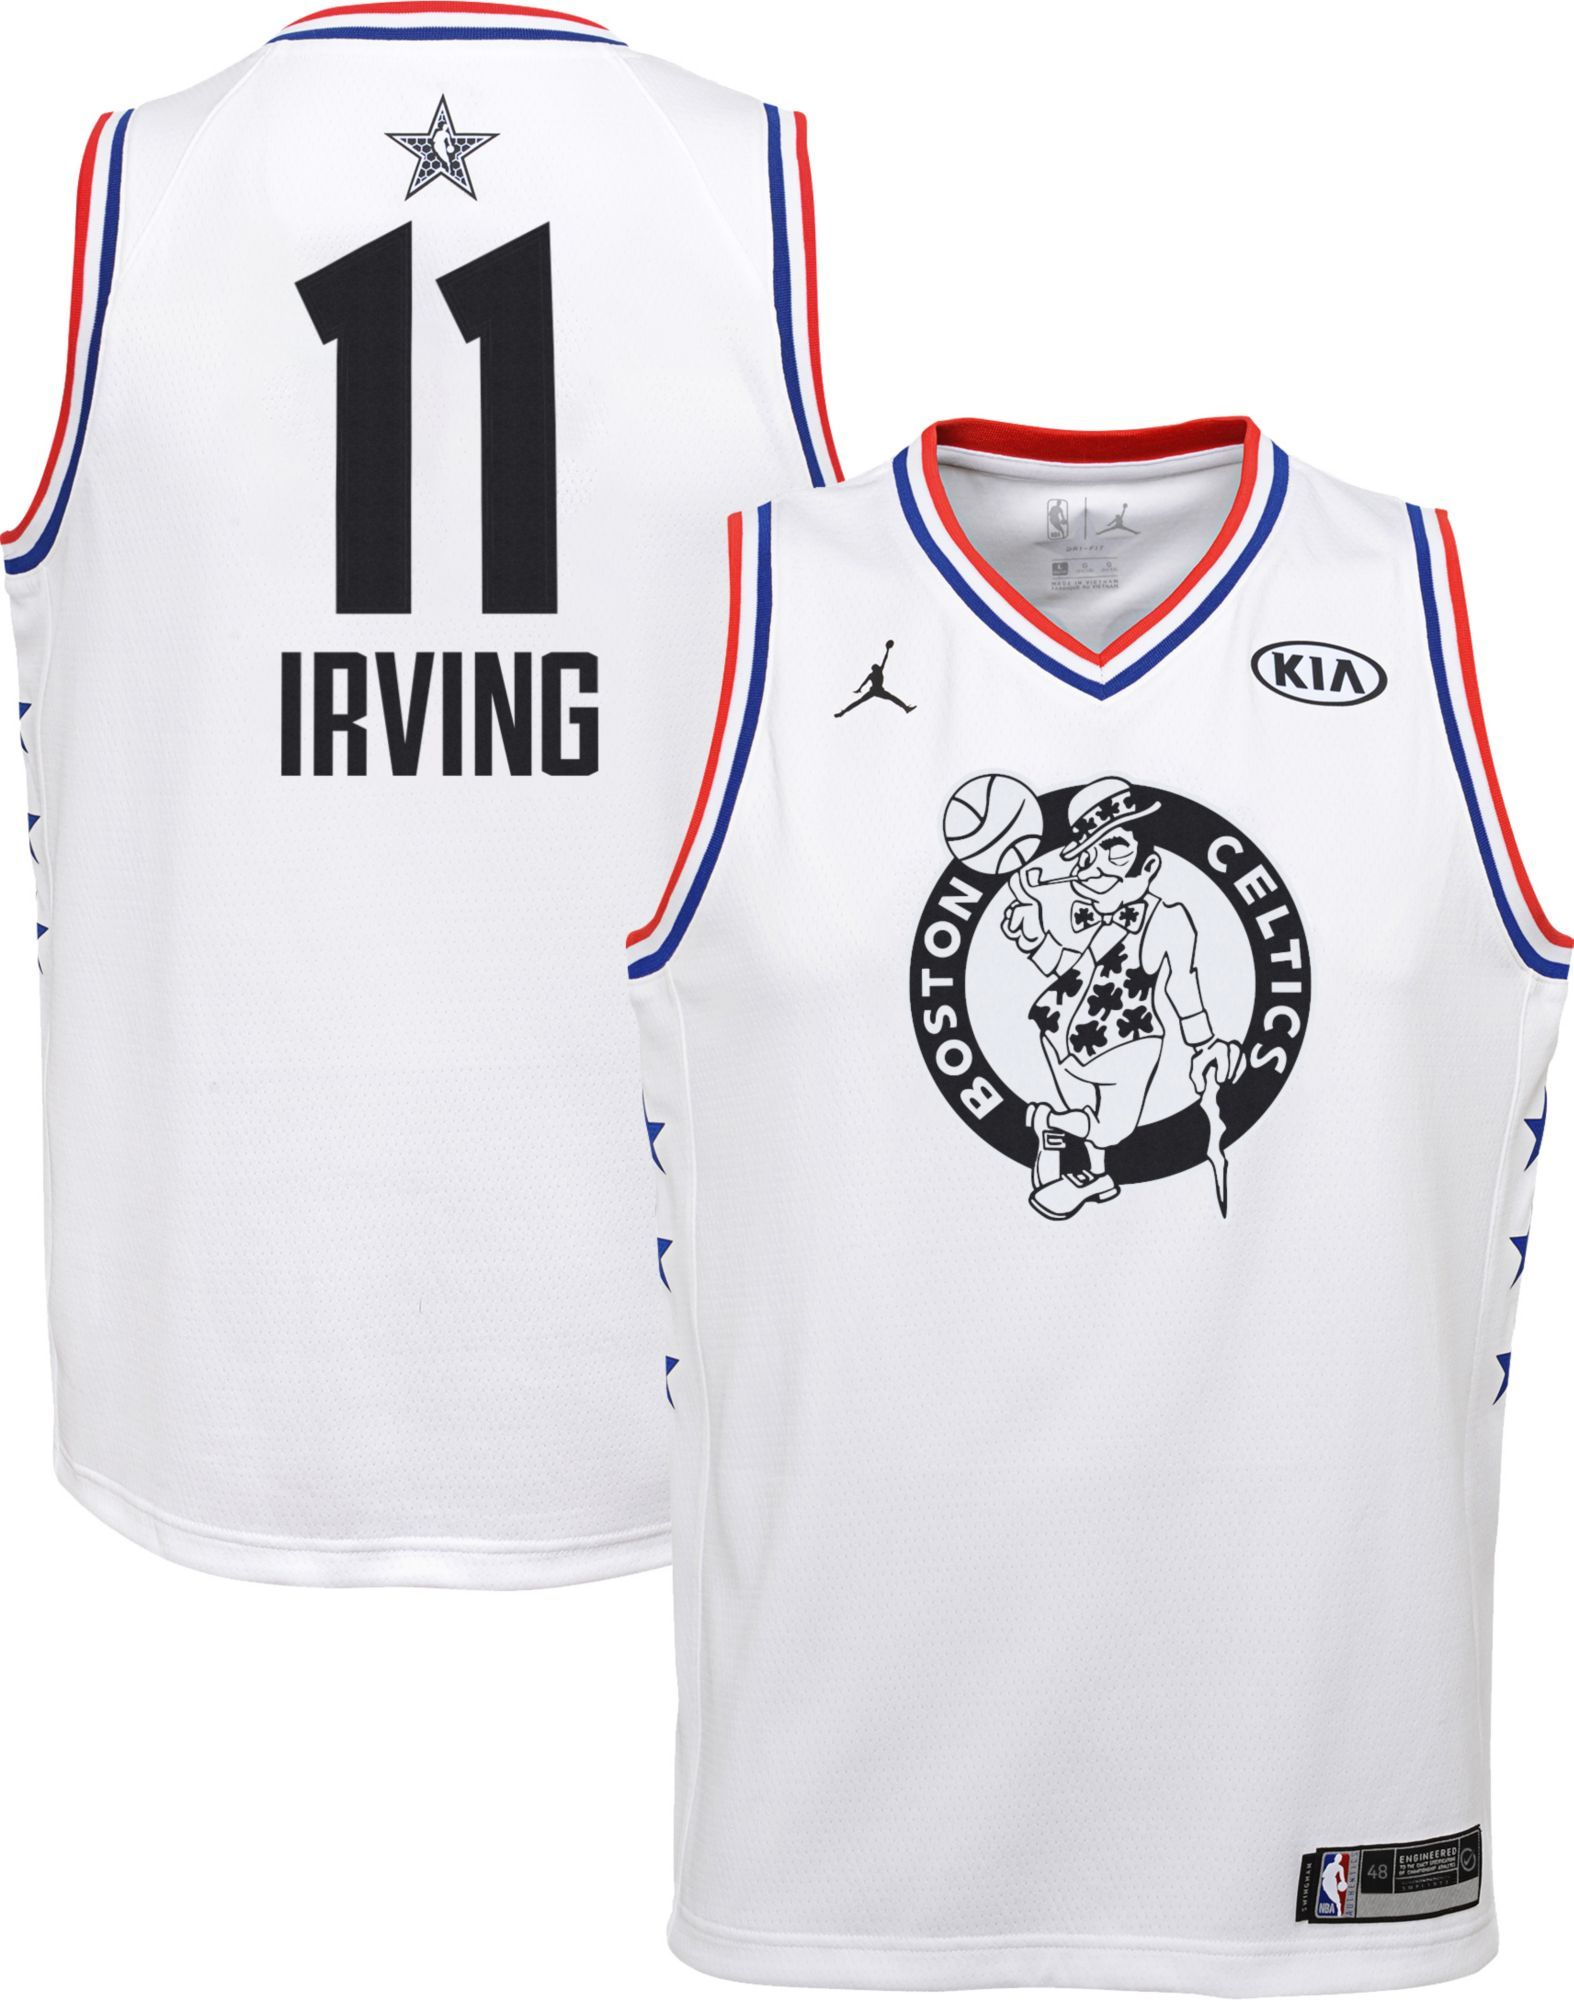 kyrie all star jersey